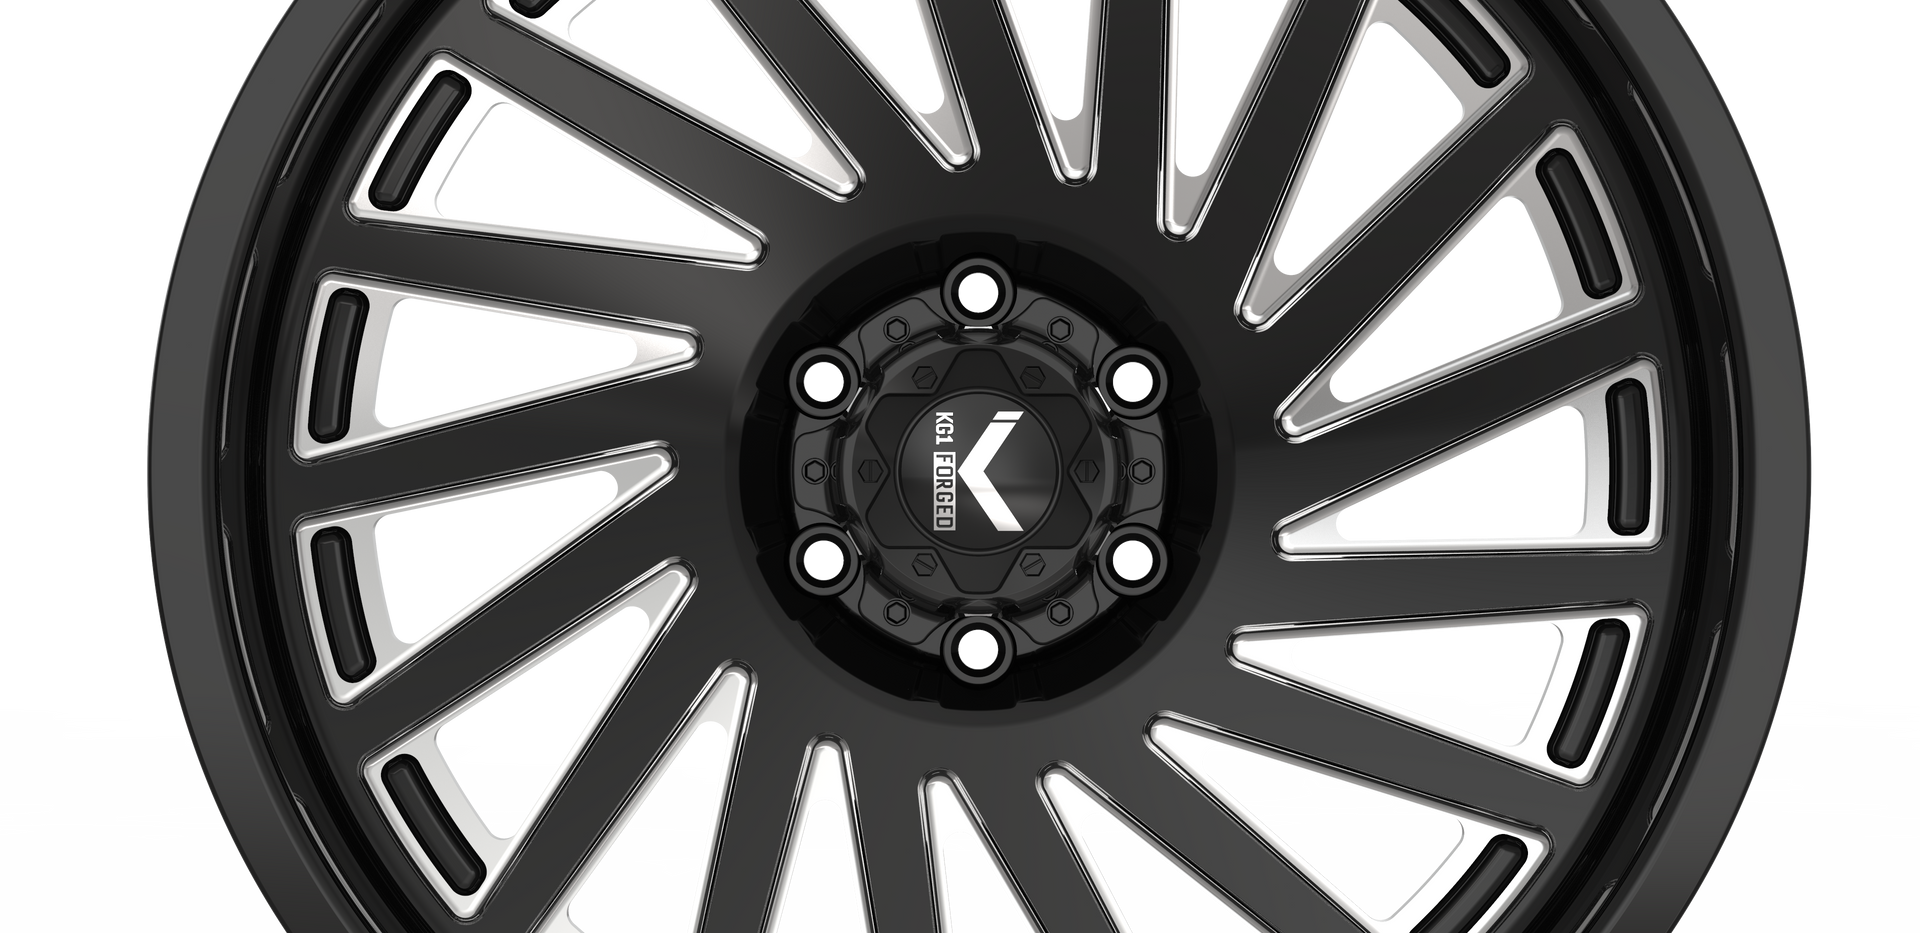 BOOST KC006R-2212-6H- Black Machining-1.